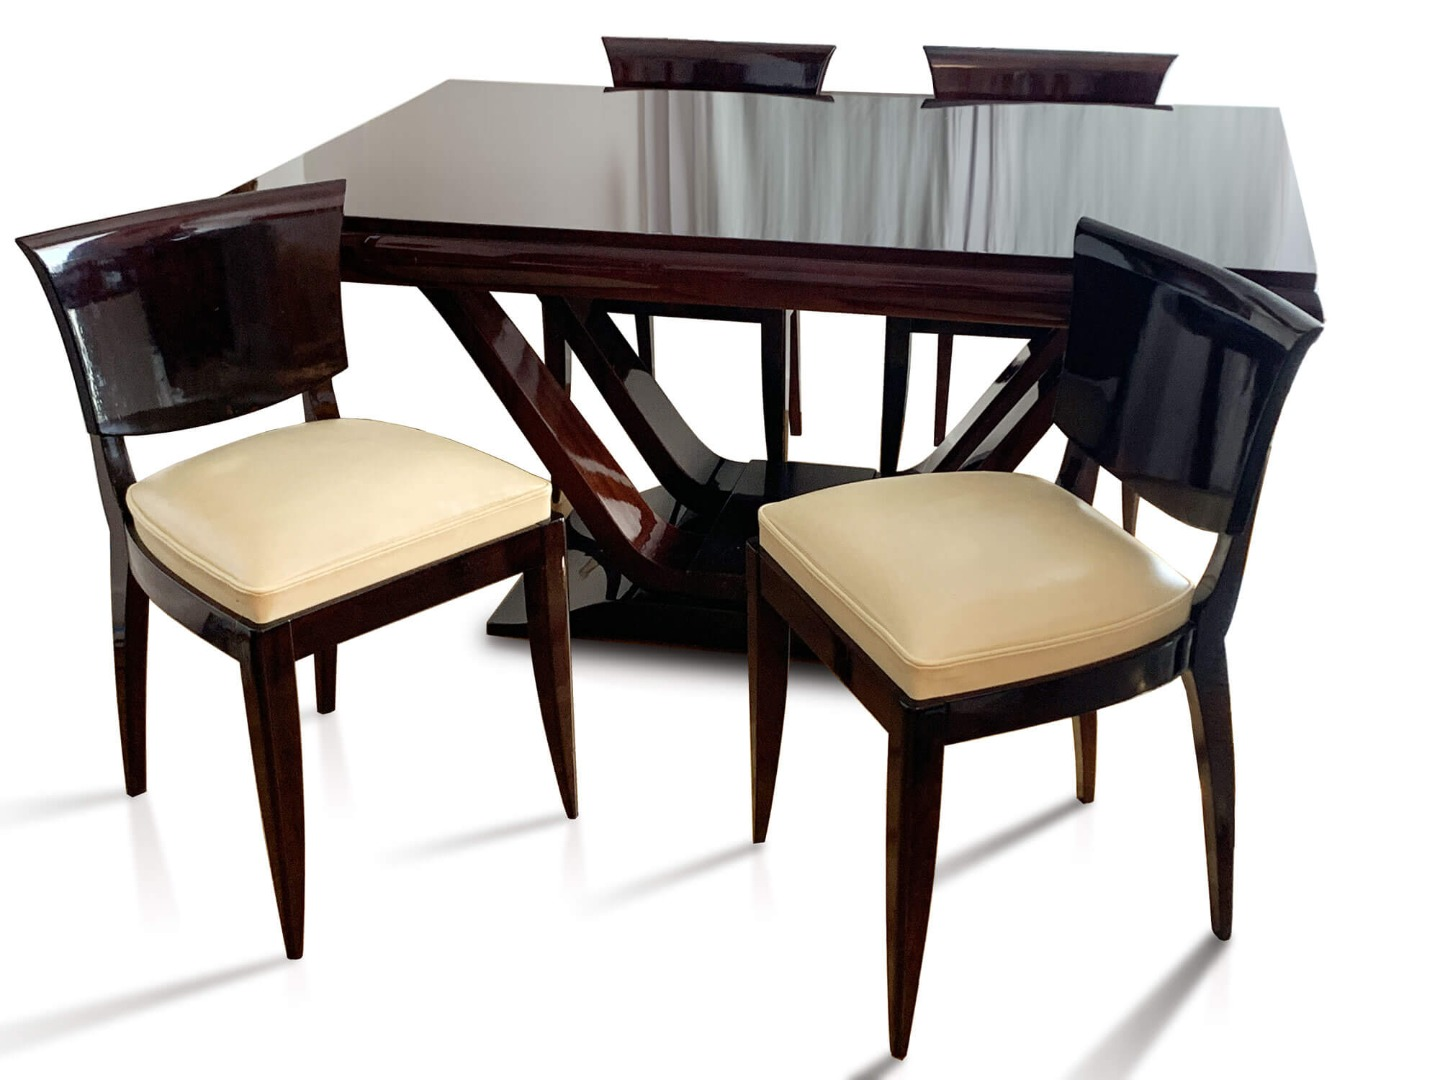 Art Deco Rio Rosewood Table With 6 Chairs - Circa 1930